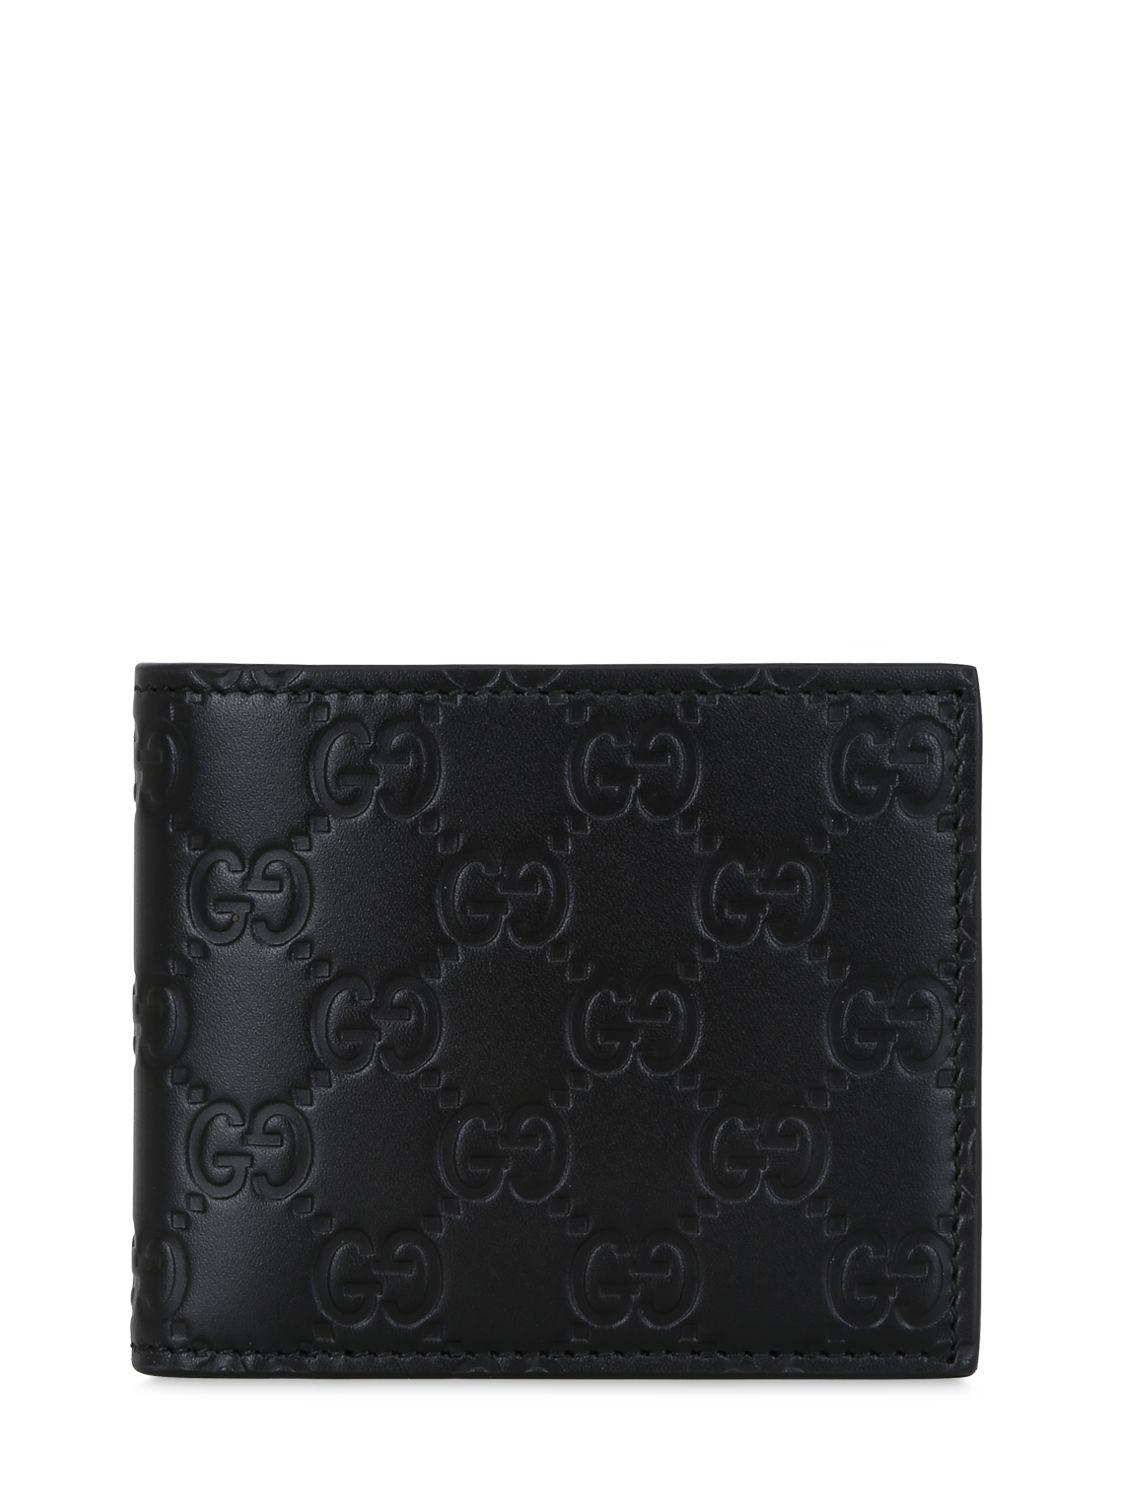 Lyst - Gucci Signature Logo Leather Wallet in Black for Men